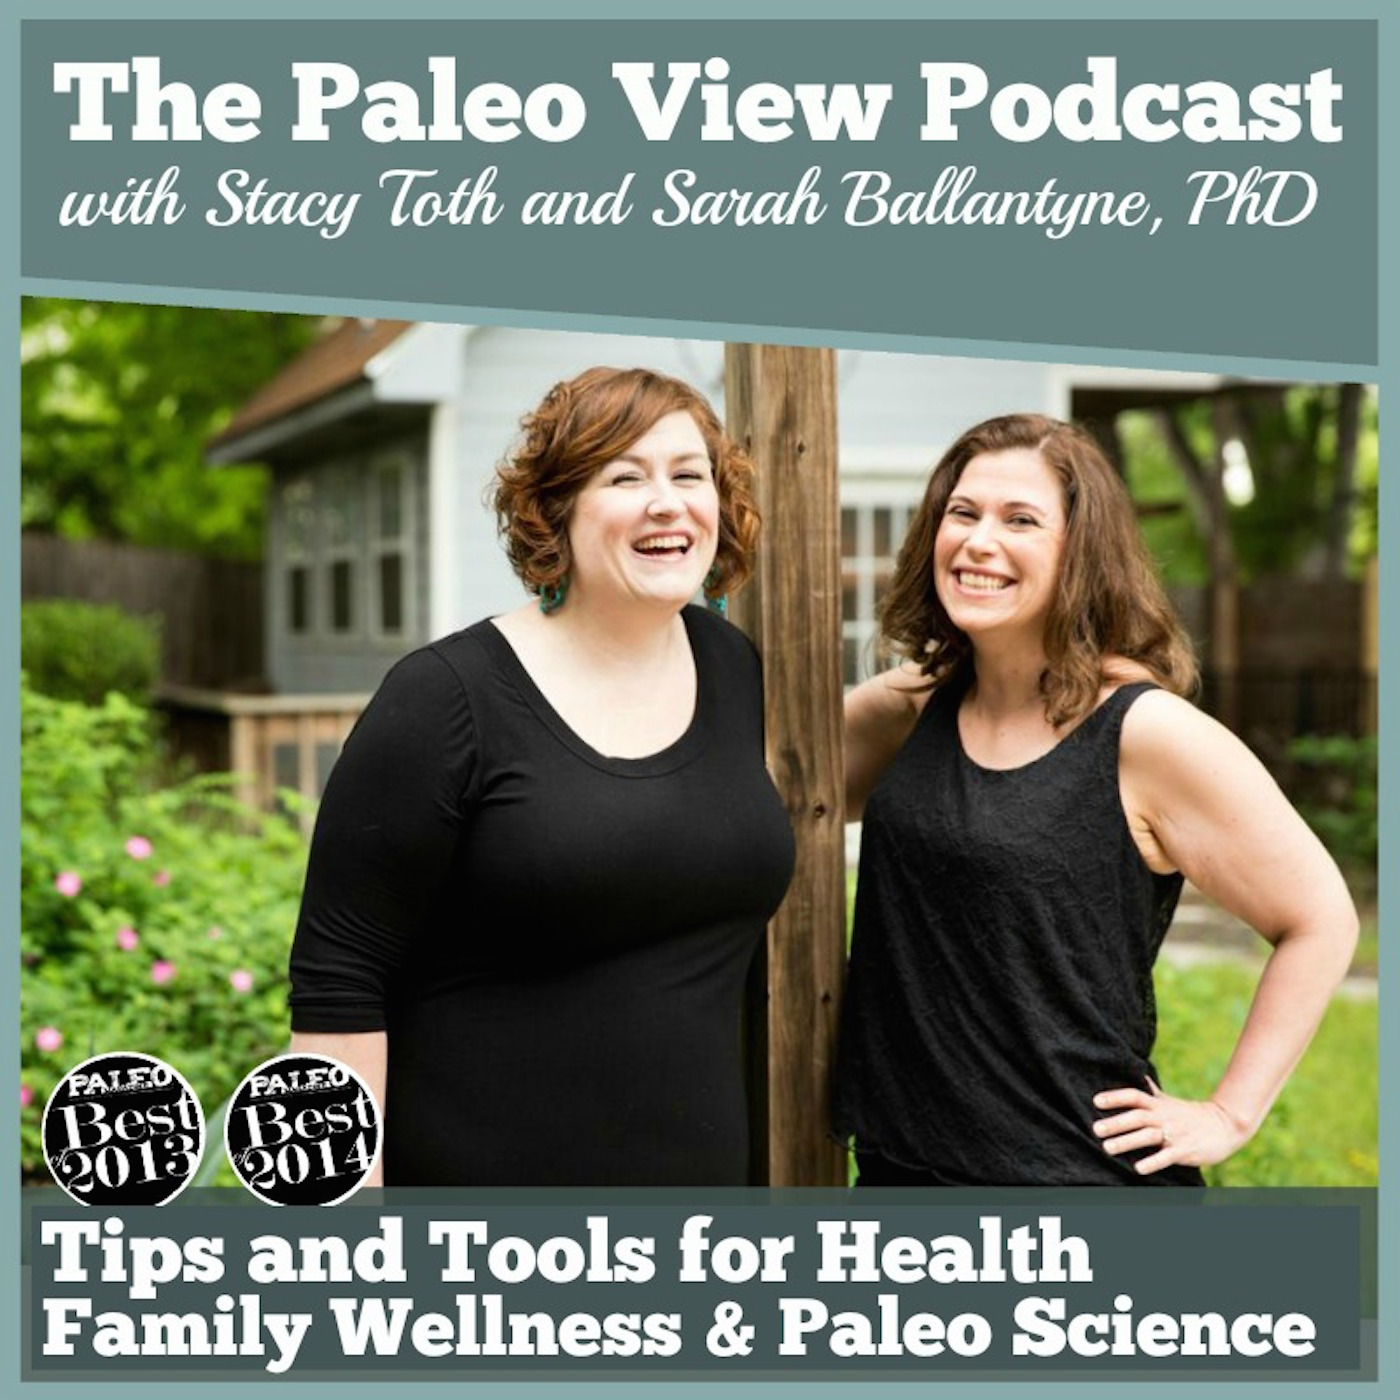 Episode 224: Kids' Sleep Health